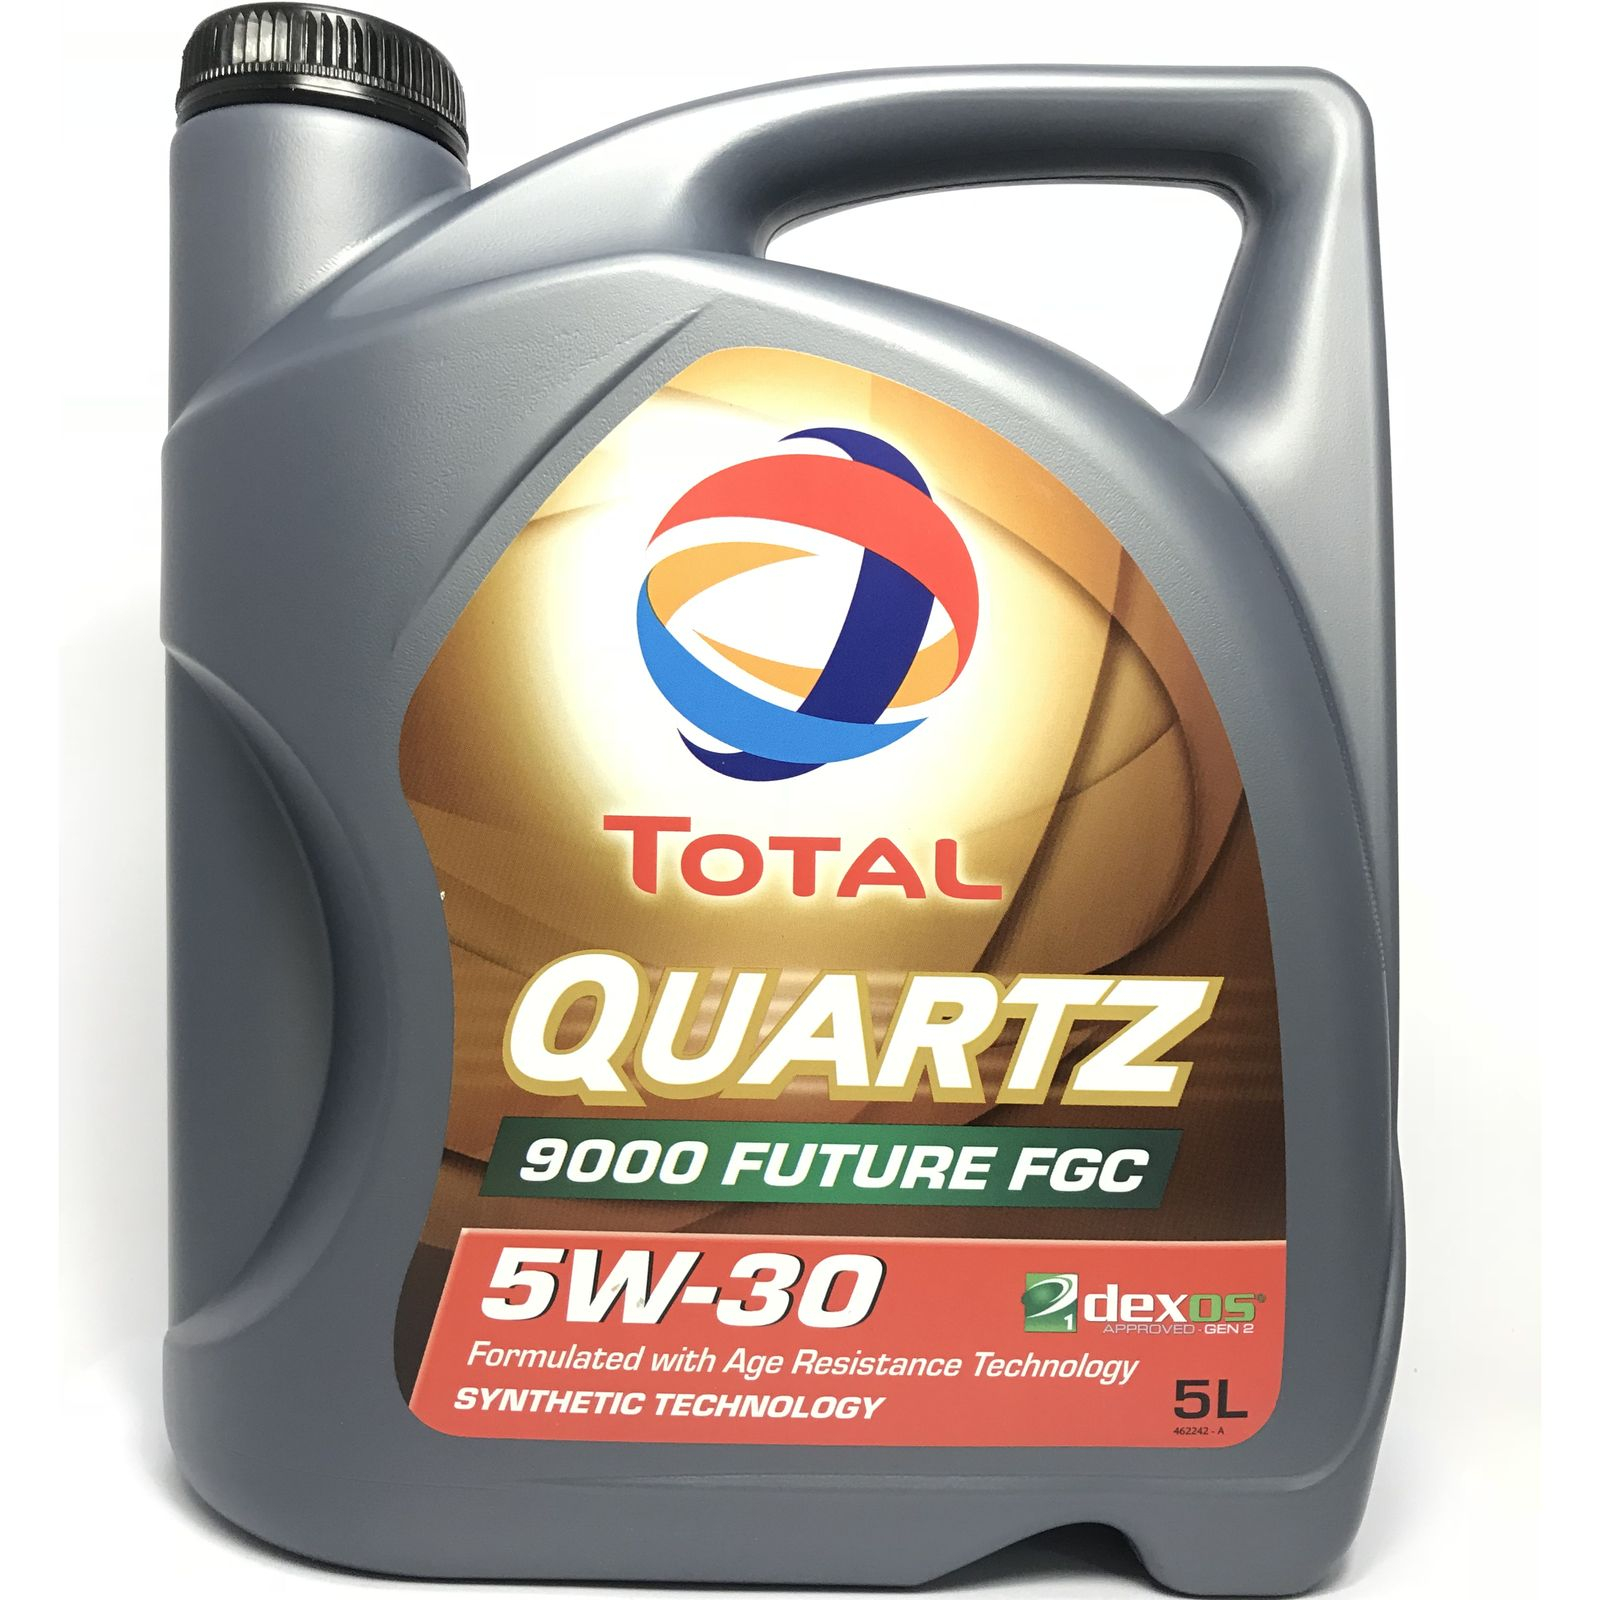 5 Liter TOTAL QUARTZ 9000 FUTURE FGC 5W-30